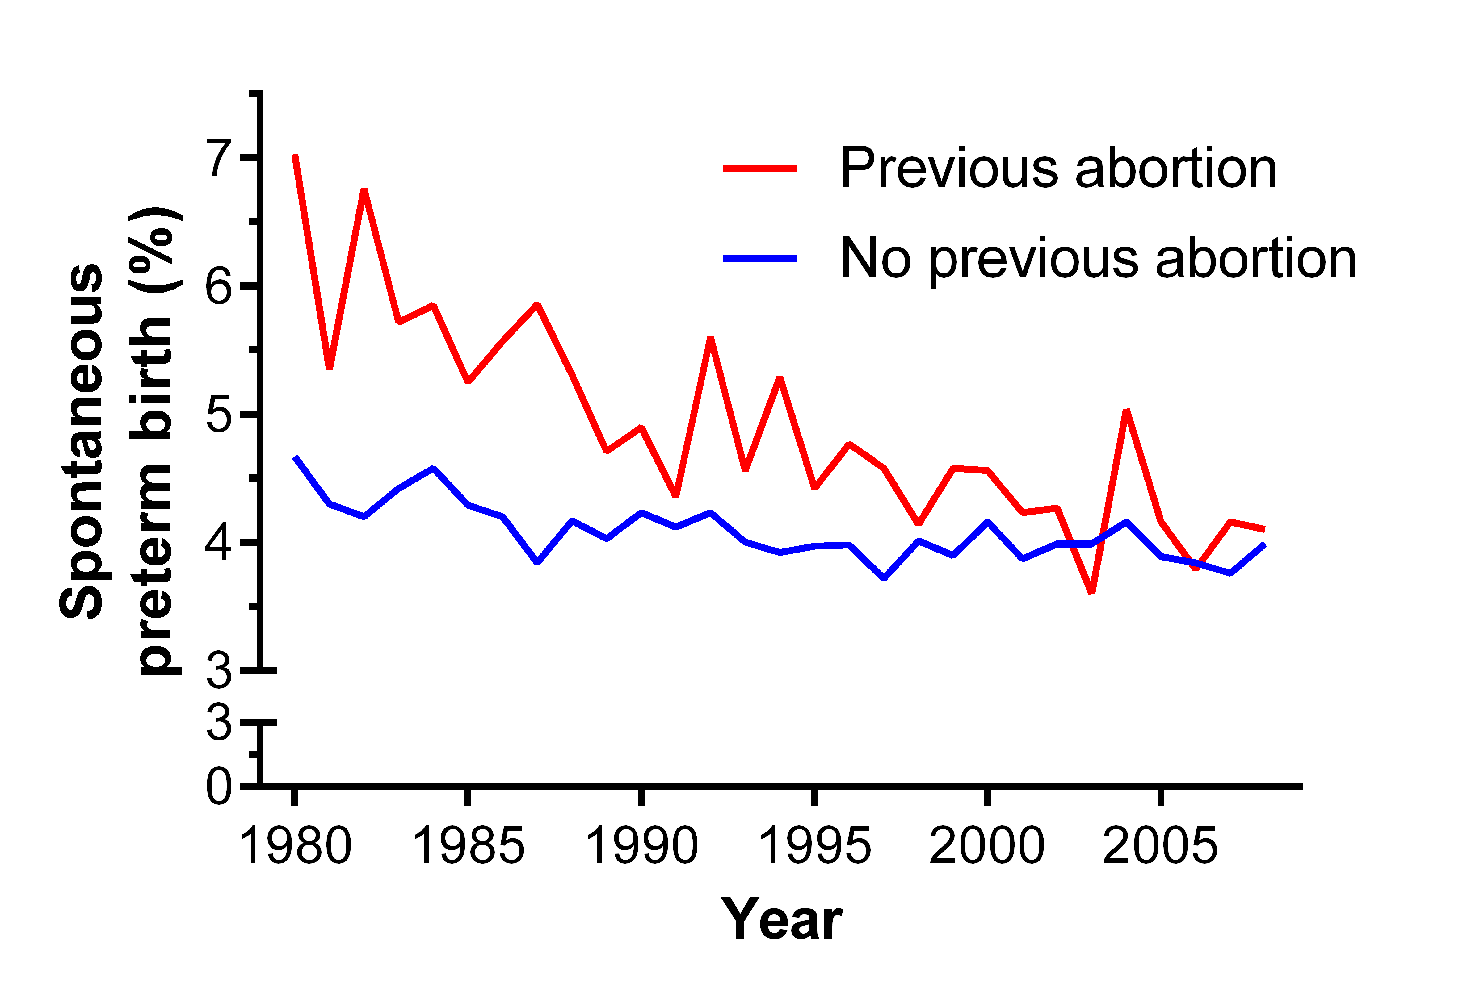 Crude rates of spontaneous preterm birth for nulliparous women with (<i>n</i> = 63,428) and without (<i>n</i> = 669,291) a past history of abortion in Scotland, 1980–2008.